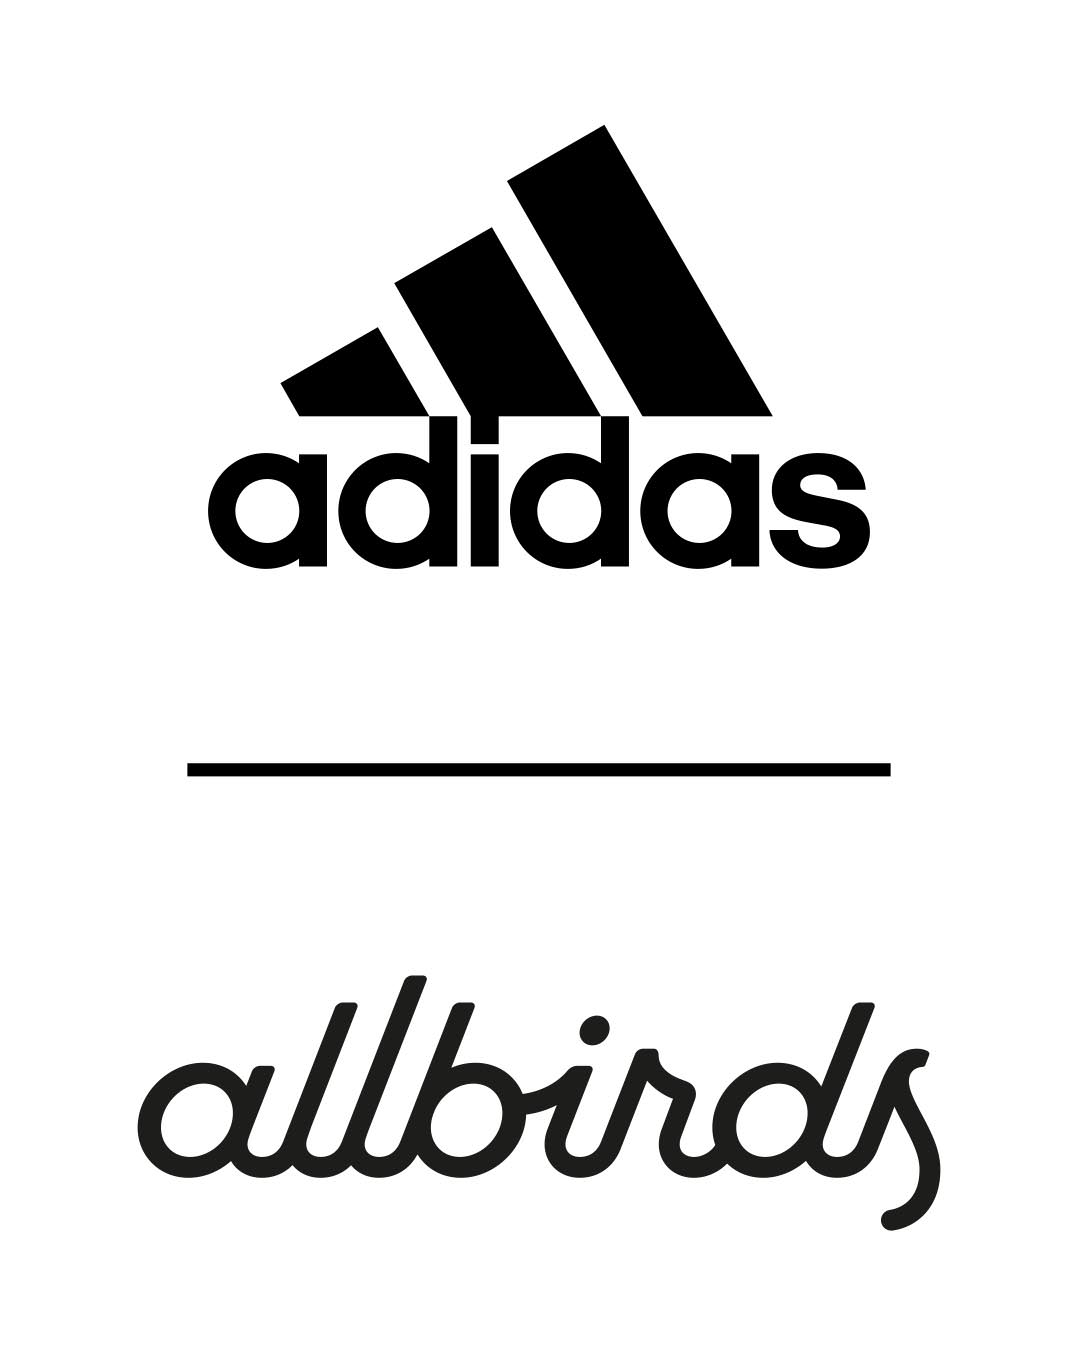 adidas, allbirds, sneakers, shoes, Sustainable partnerships, Sustainability parterships, brand partnerships, ecofriendly business